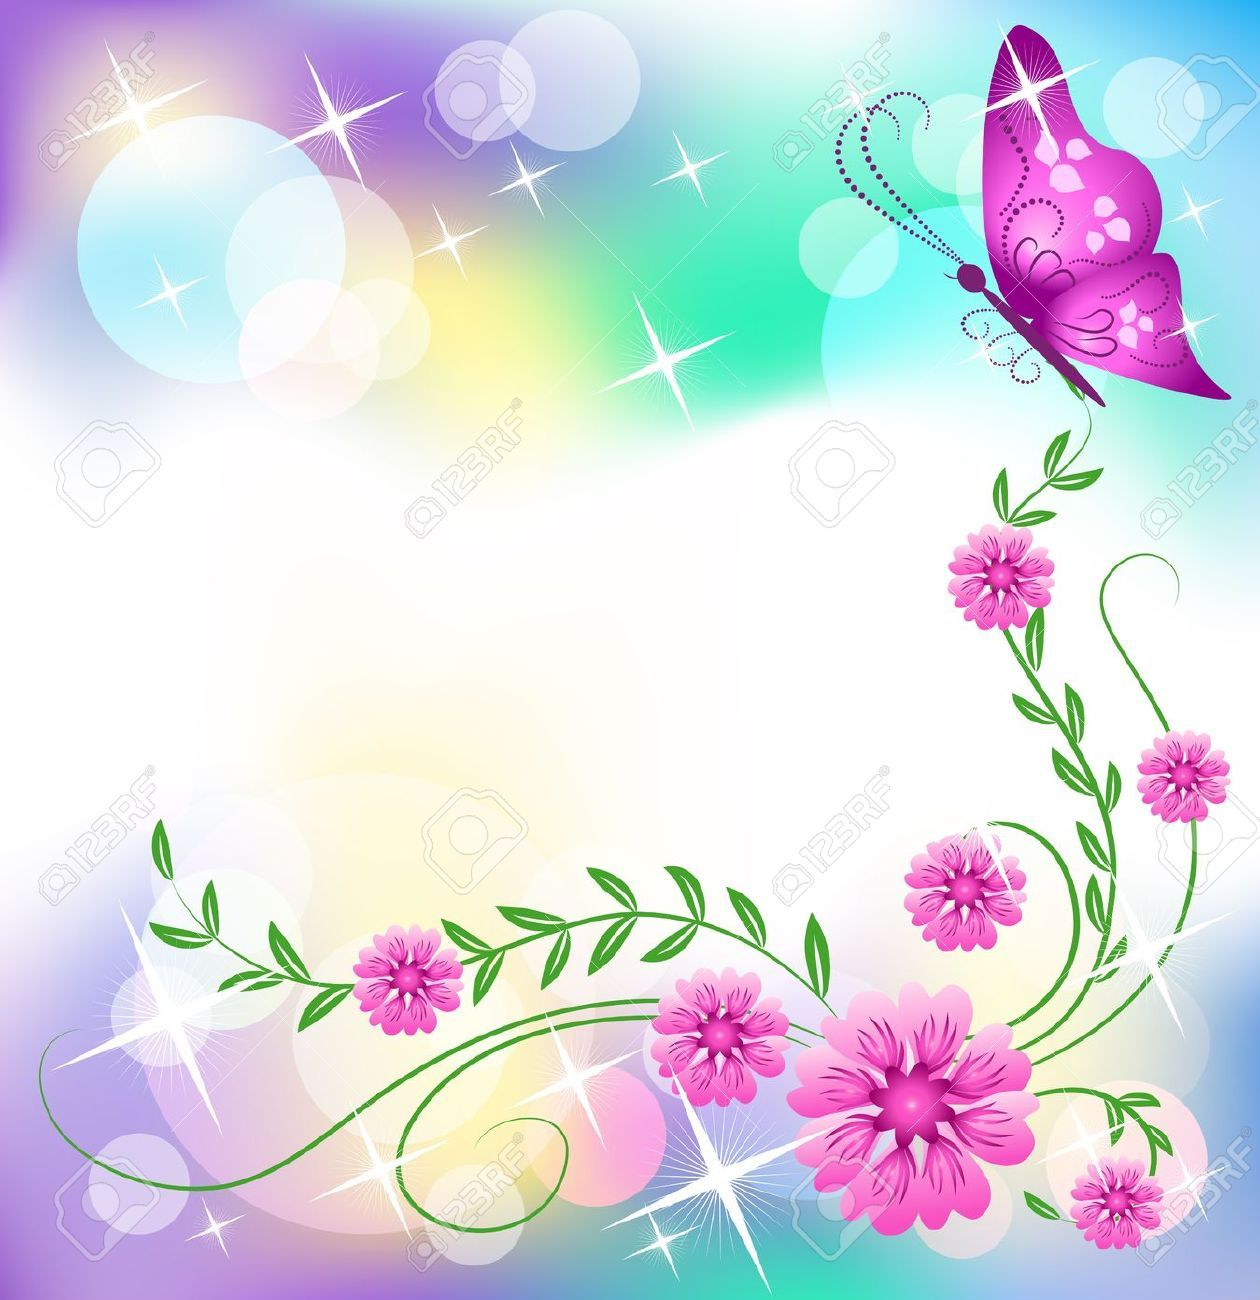 Butterfly borders clipart png transparent library butterfly border clip art - Google Търсене | rainbows | Butterfly ... png transparent library